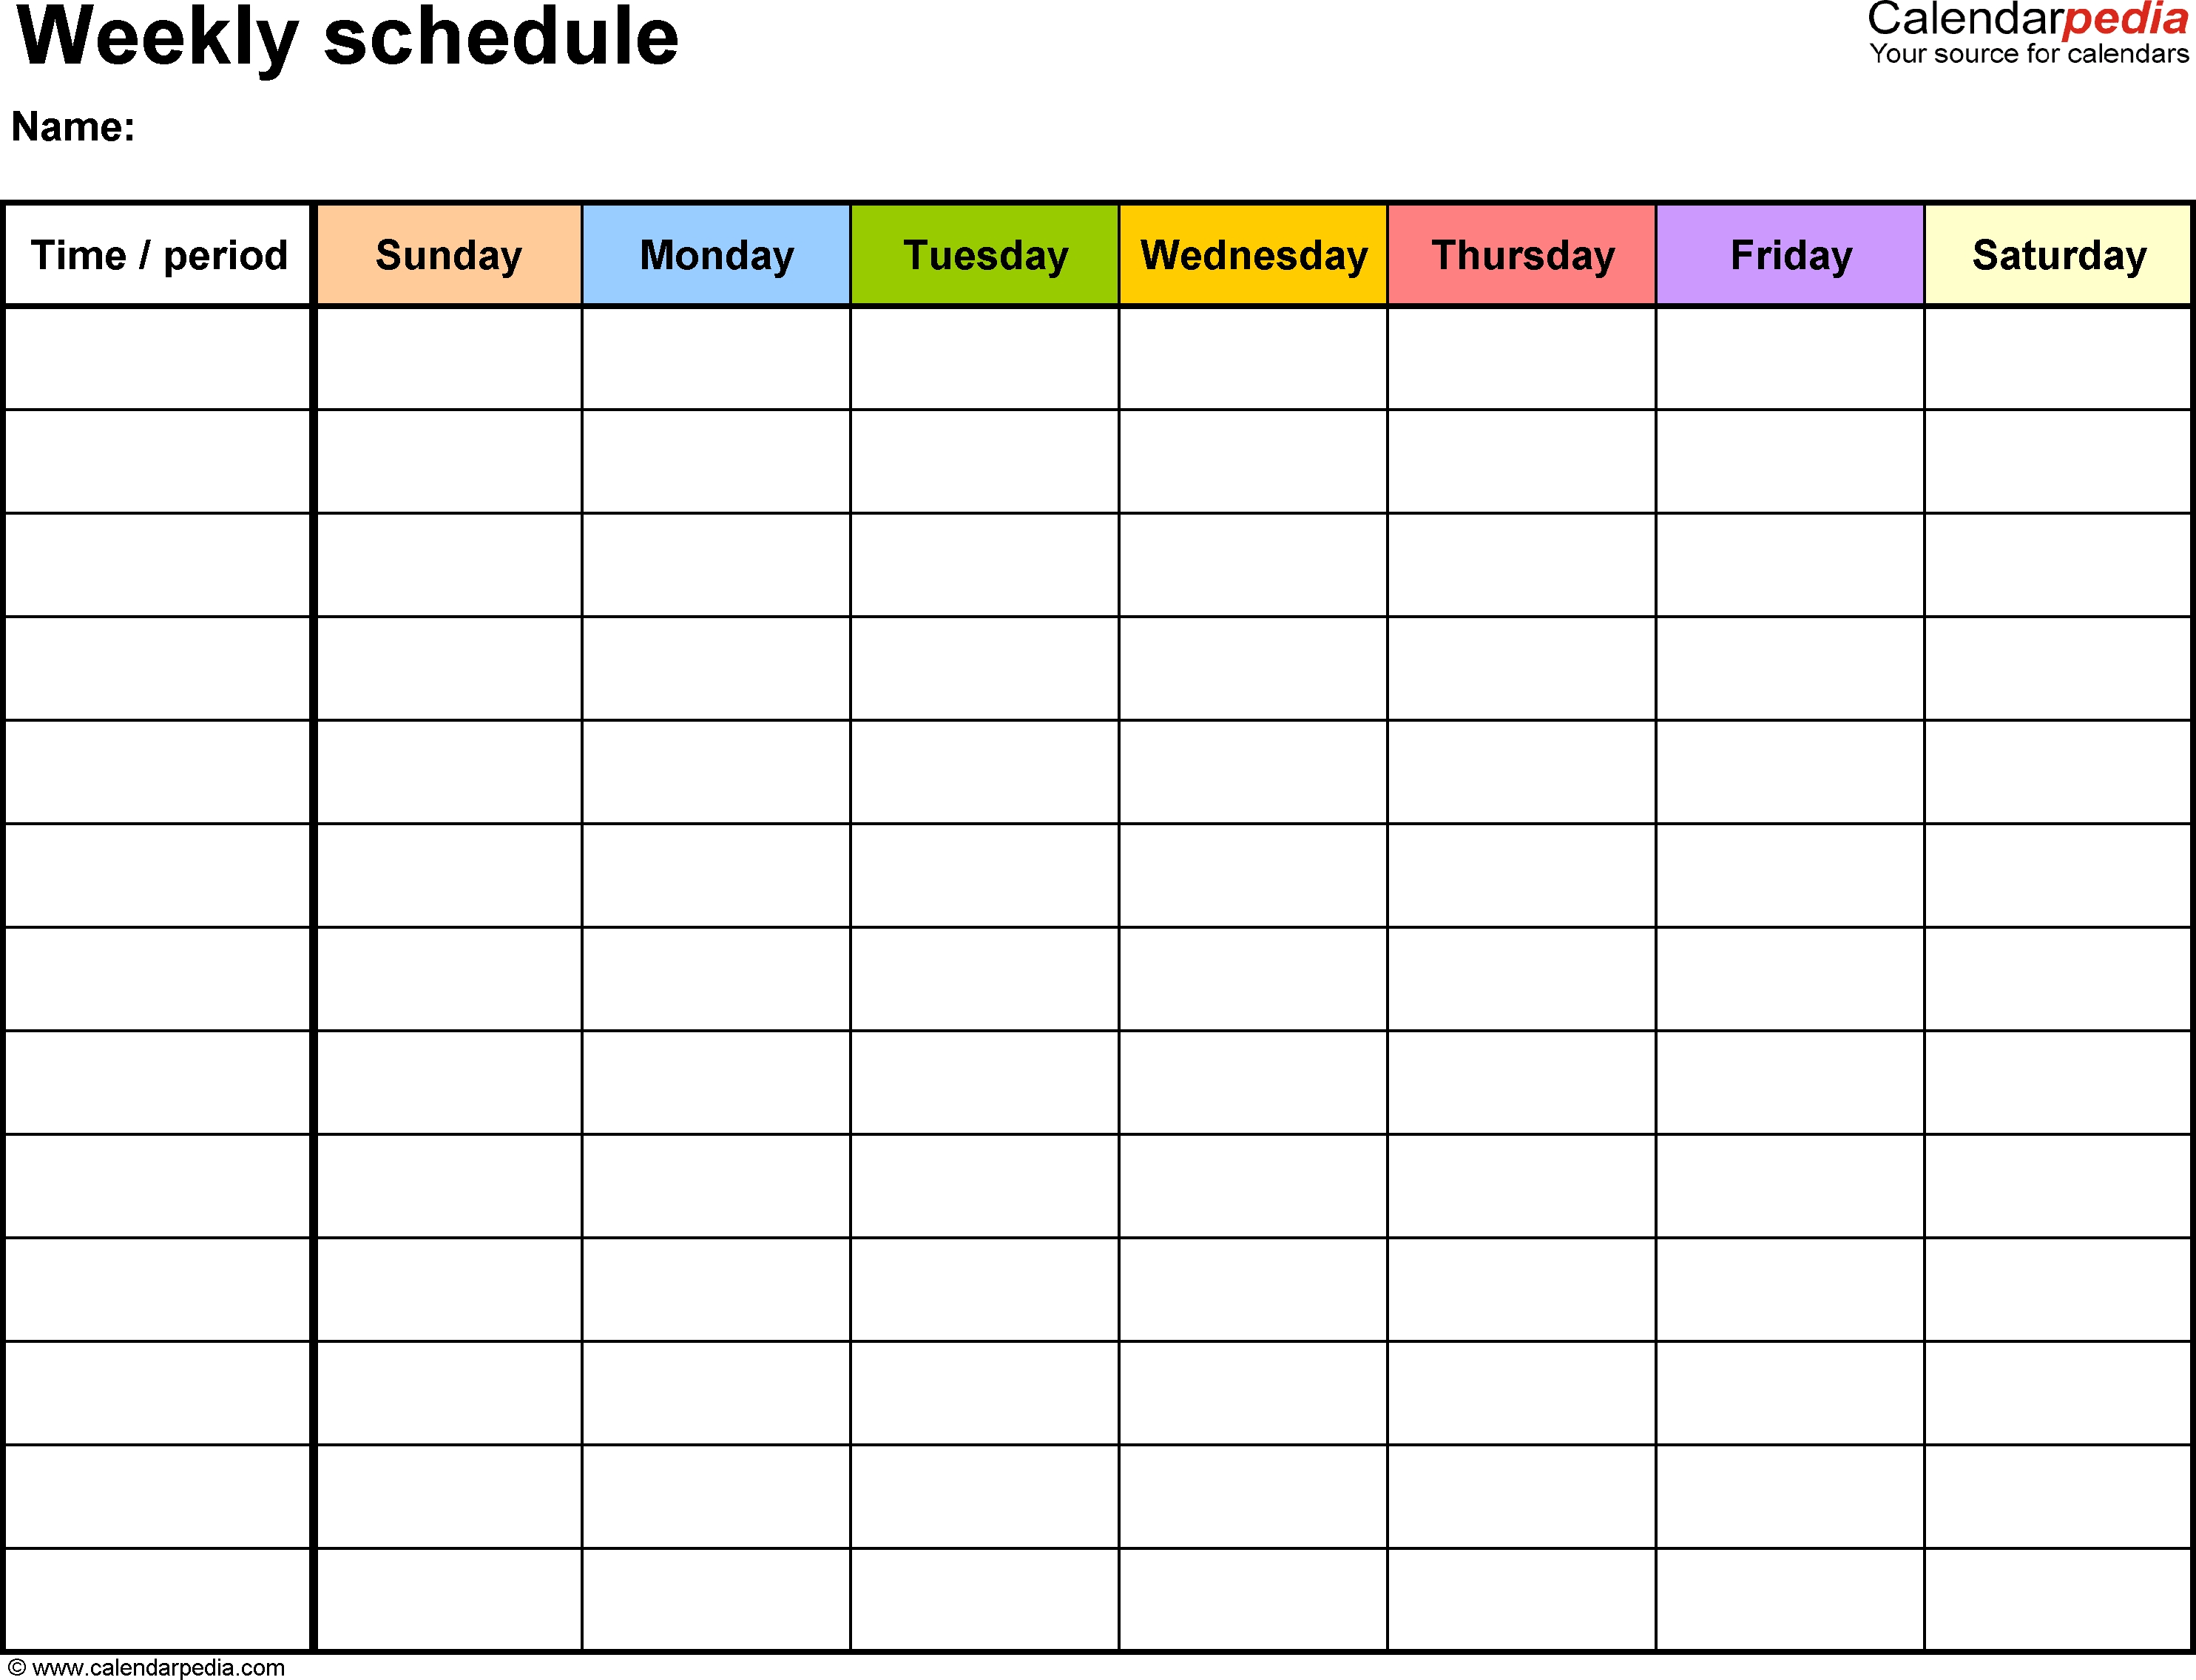 Free Weekly Schedule Templates For Word - 18 Templates  Free Printable Weekly Planner Calendars